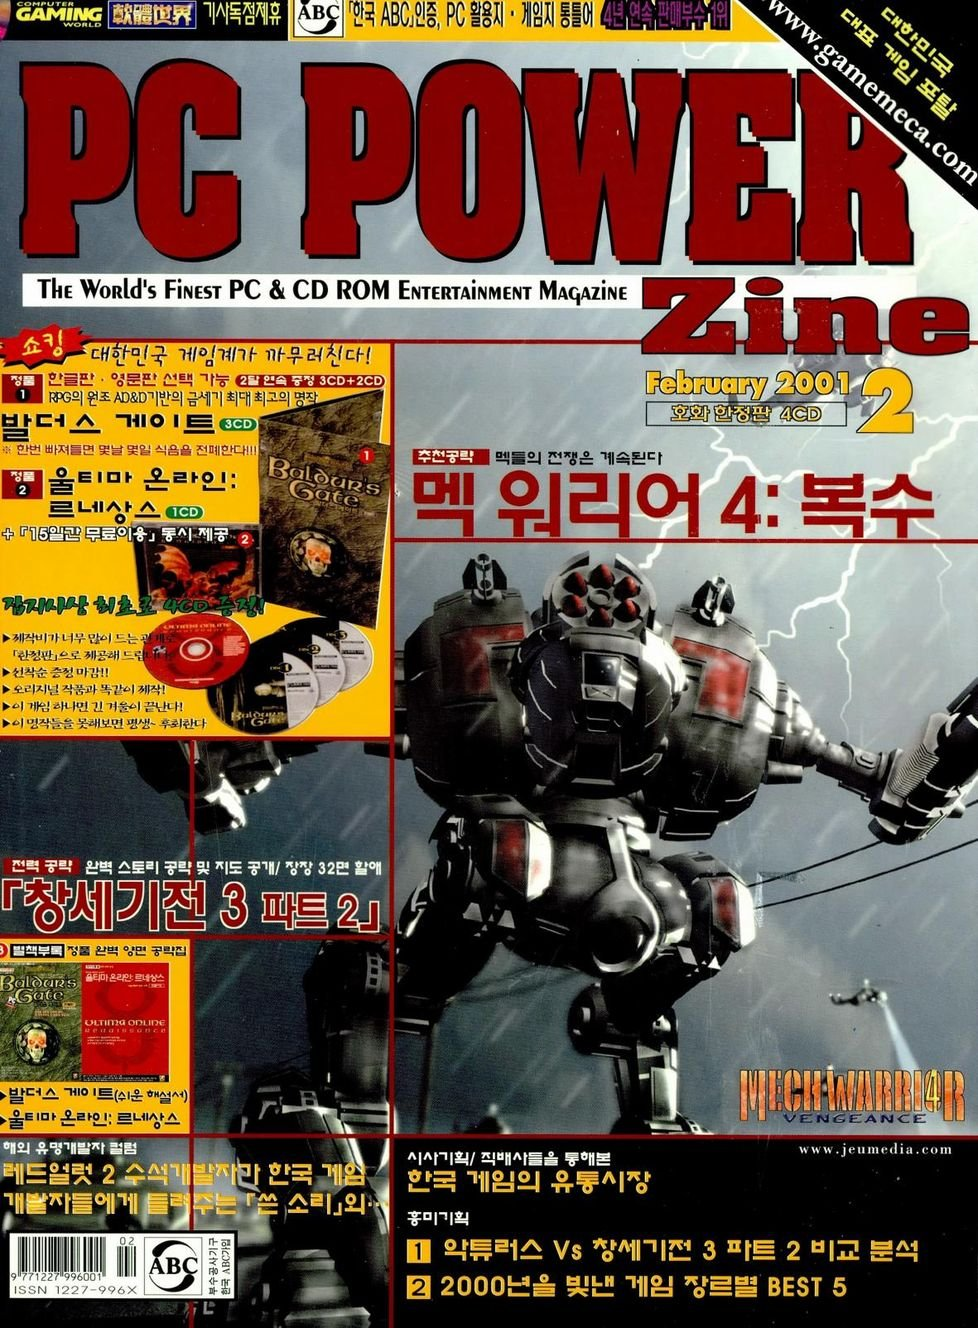 PC Power Zine Issue 67 (February 2001)